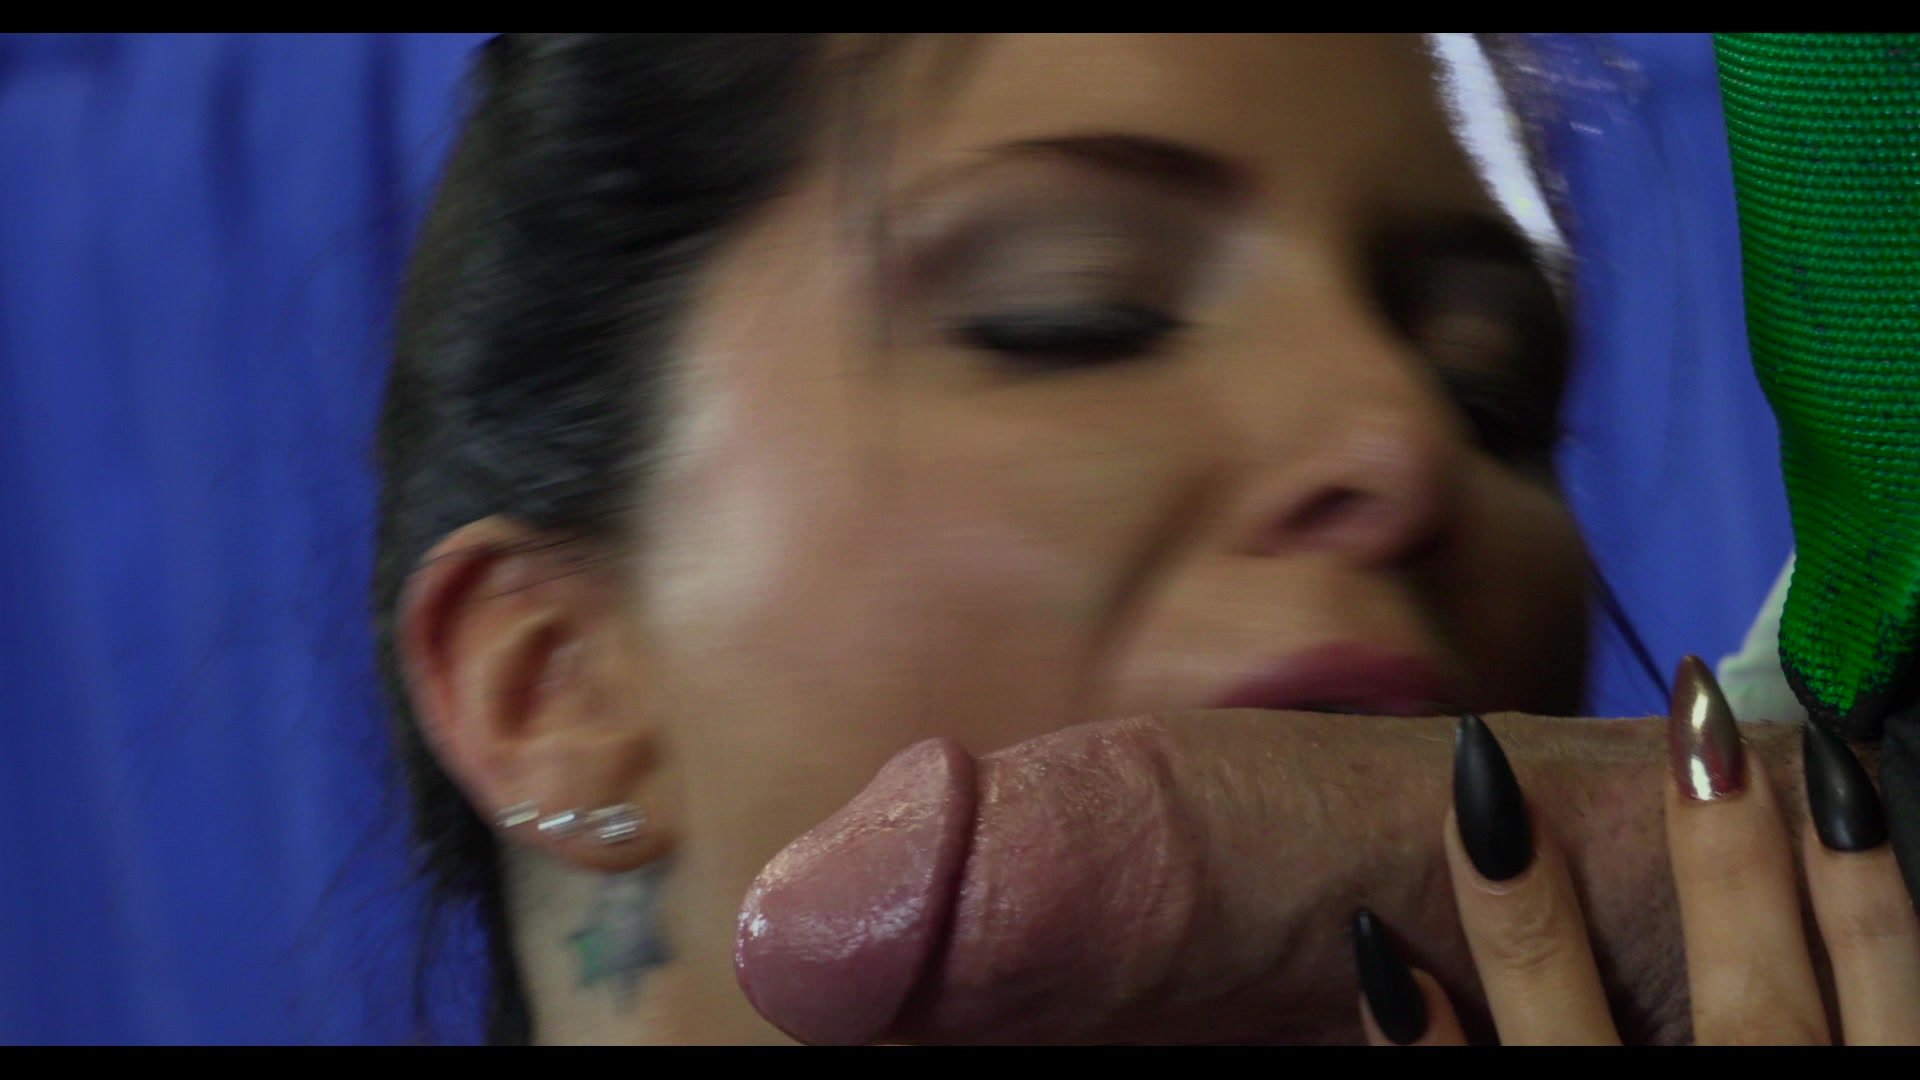 Scene with Xander Corvus and Romi Rain - image 8 out of 20